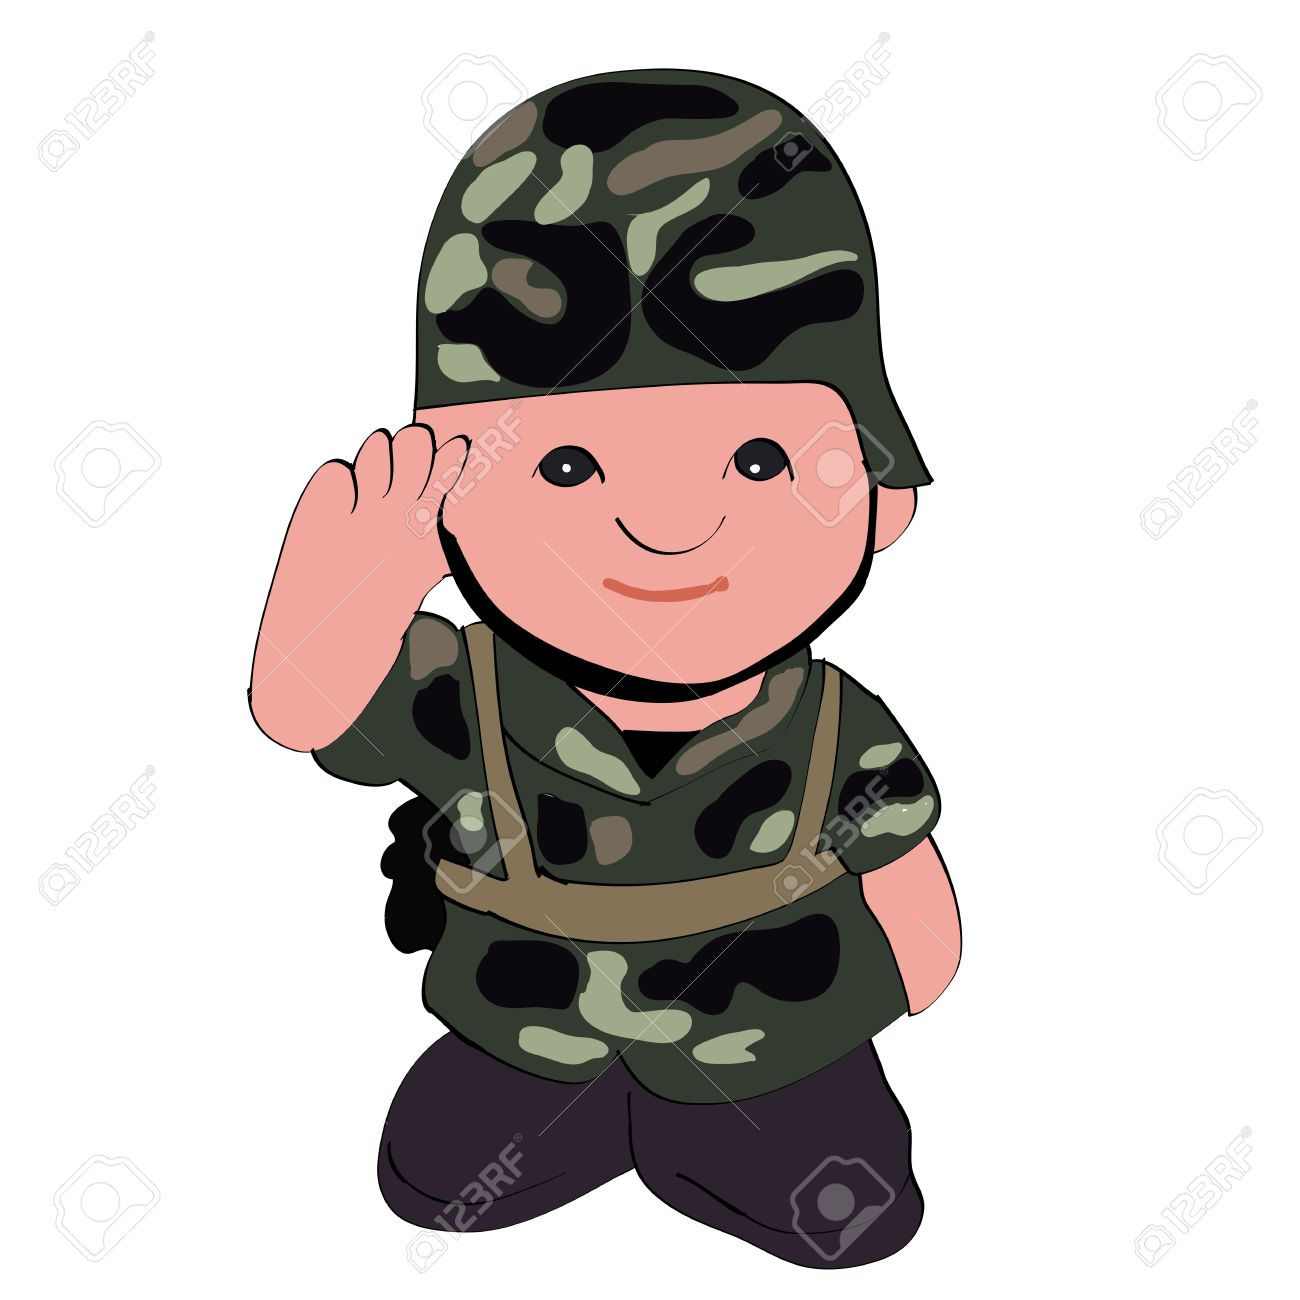 Soldier clipart kid And kid (18+) Child Soldier